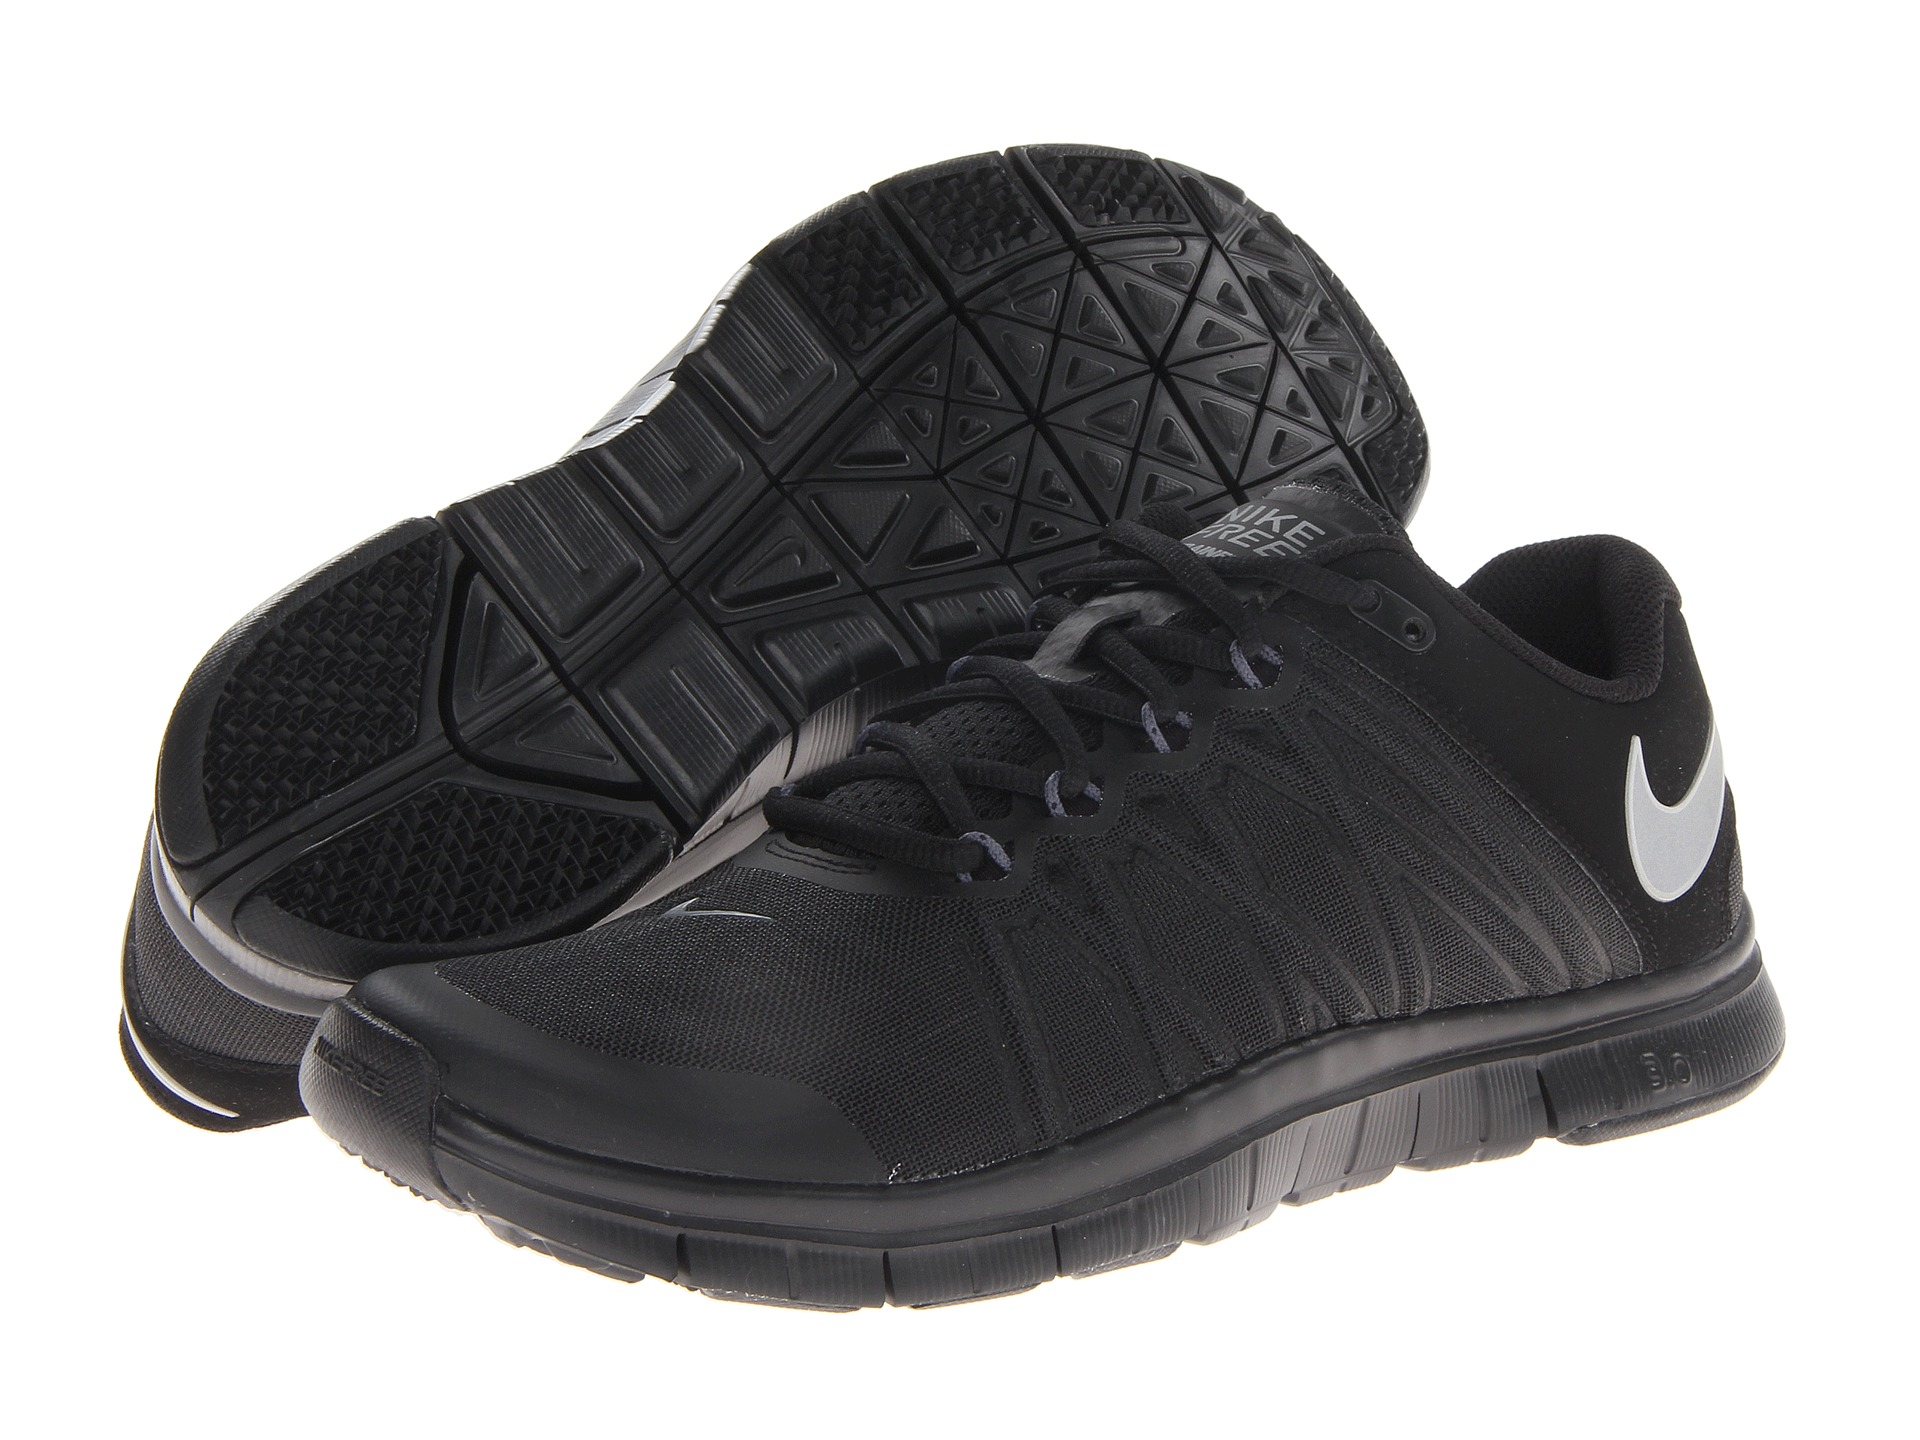 a2d567134efd ... get nike free trainer 3.0 zappos 10e64 61863